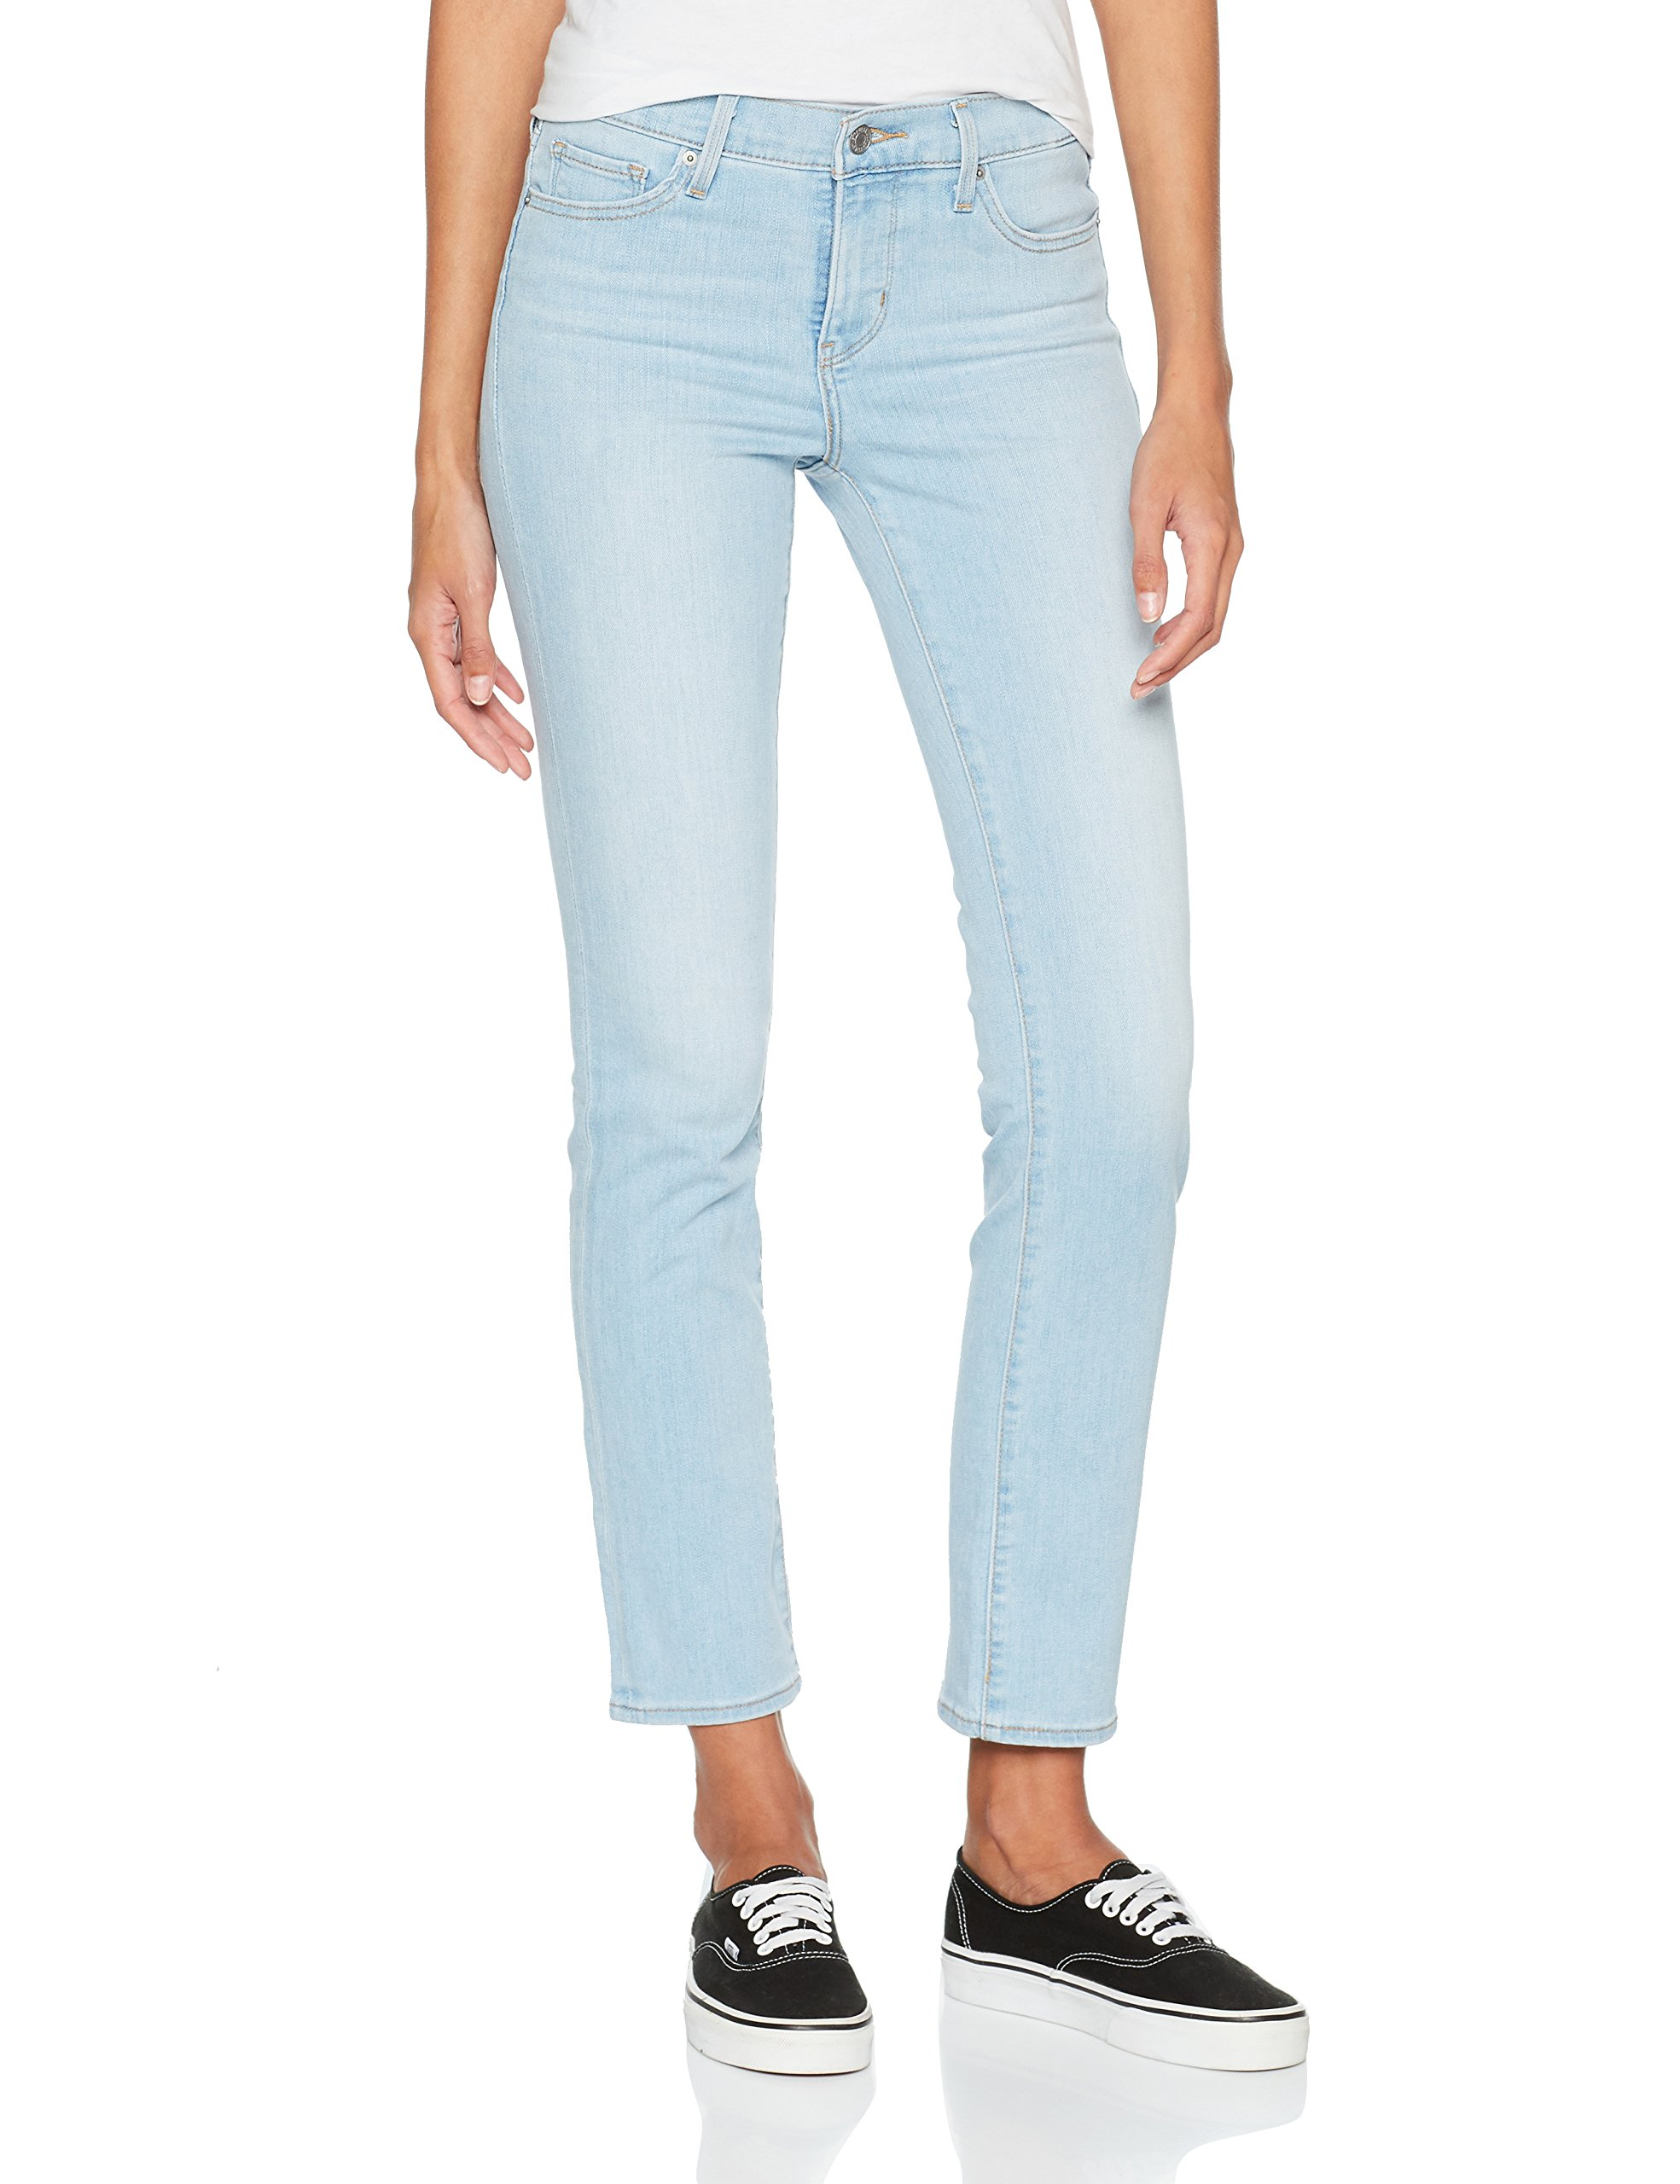 Slim l32taille Shaping JeanBleusunbeam Fabricant30 Levi's 0069W30 32Femme 312 bf7Ygy6